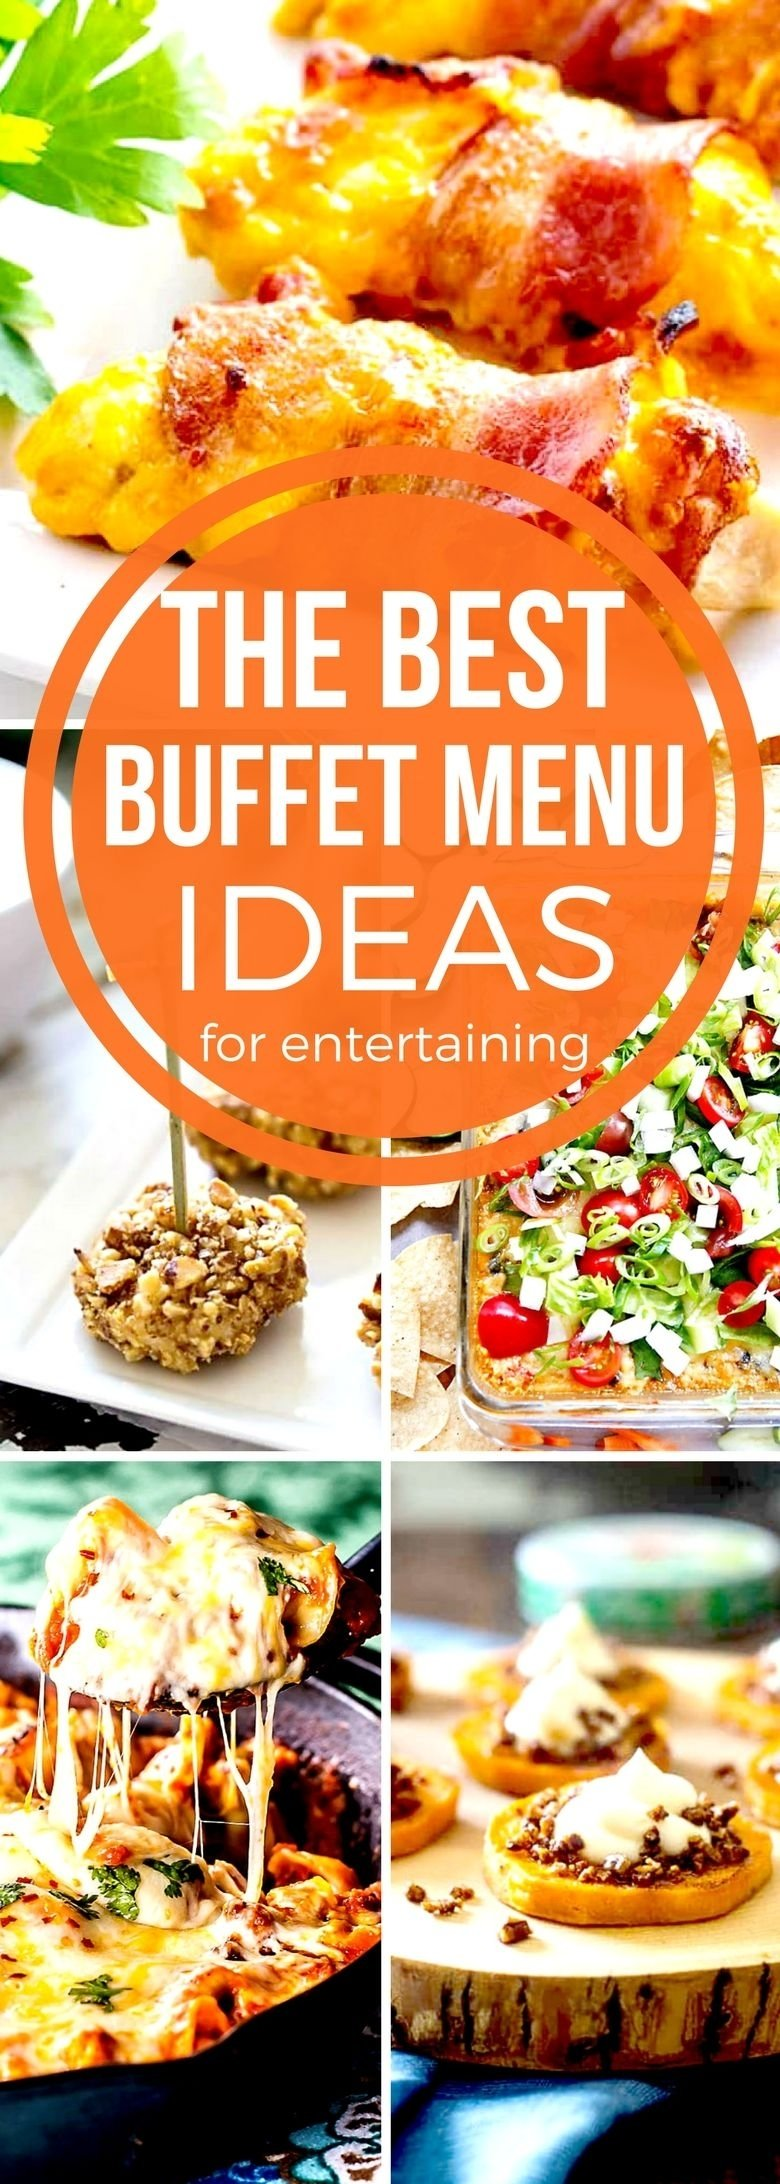 10 Nice Menu Ideas For Large Groups easily plan fun festive parties for large groups with our best 2021